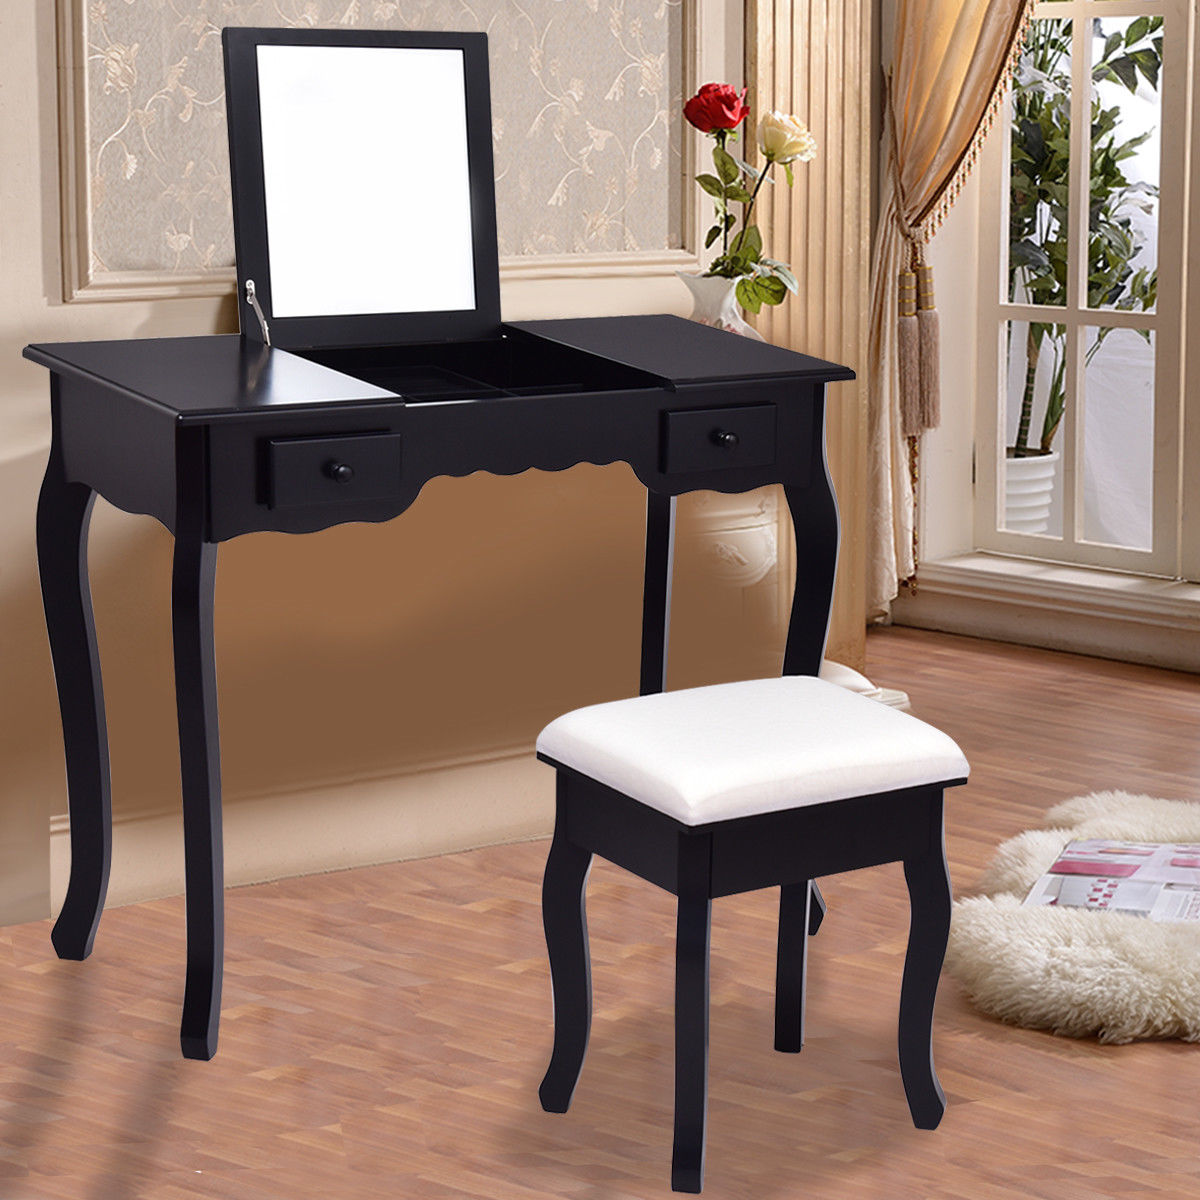 все цены на Giantex Modern Vanity Dressing Table Set Mirrored Bathroom Furniture With Stool Table Black Make Up Dresser Desk HW56231BK